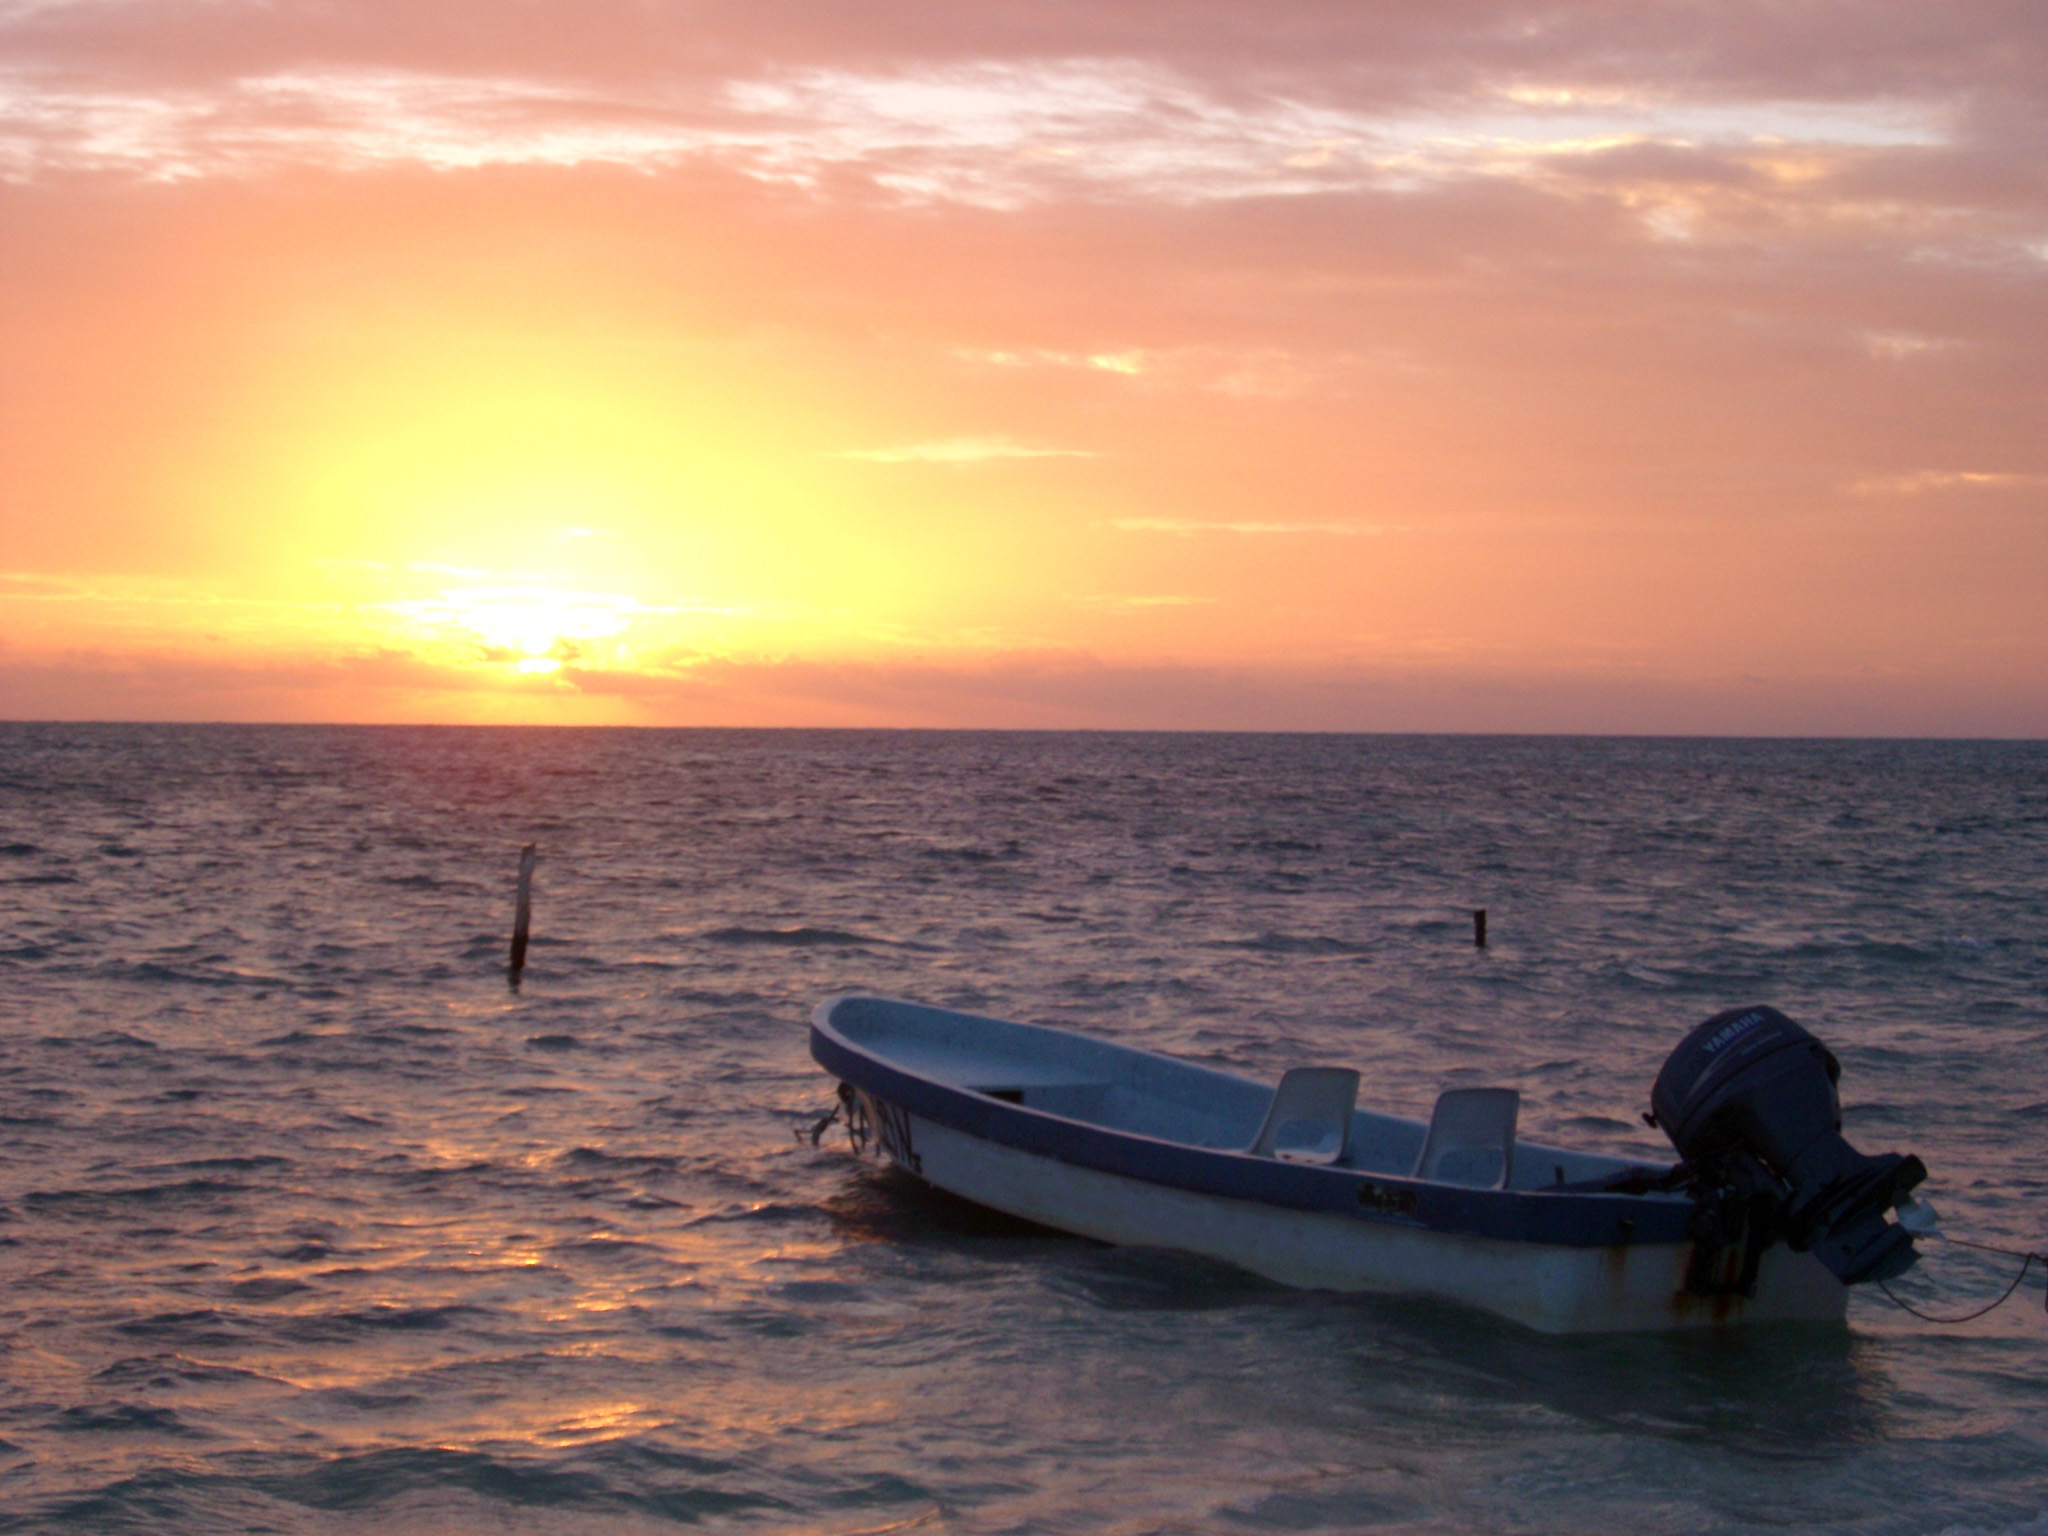 Colorful Caribbean sunset with a glowing orange sun dipping below the ocean and a moored wooden motorboat in the foreground